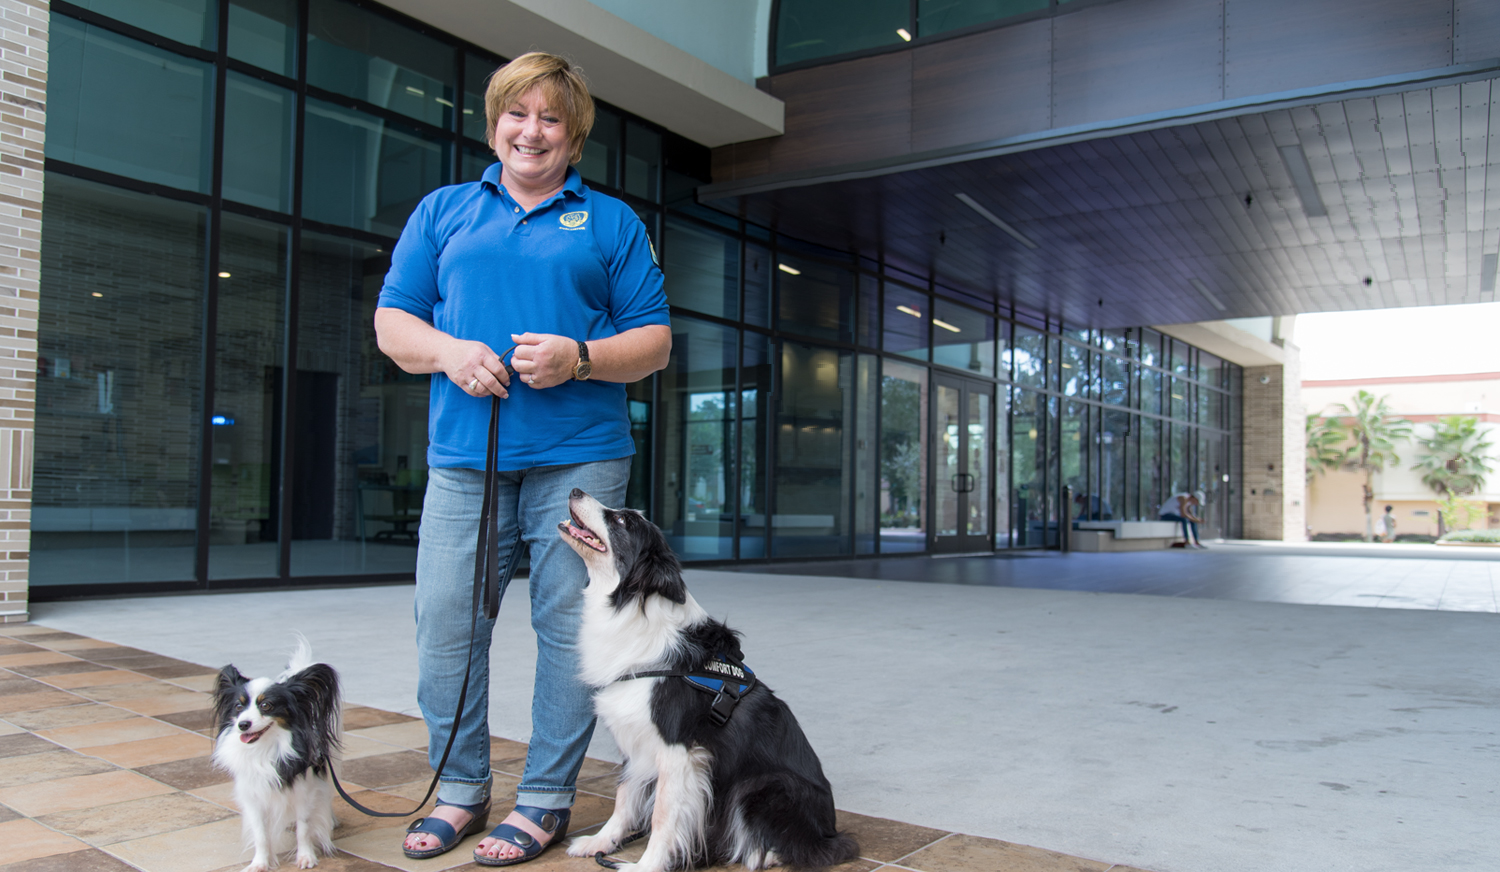 Comforting Canines: Using Therapy Dogs to Heal